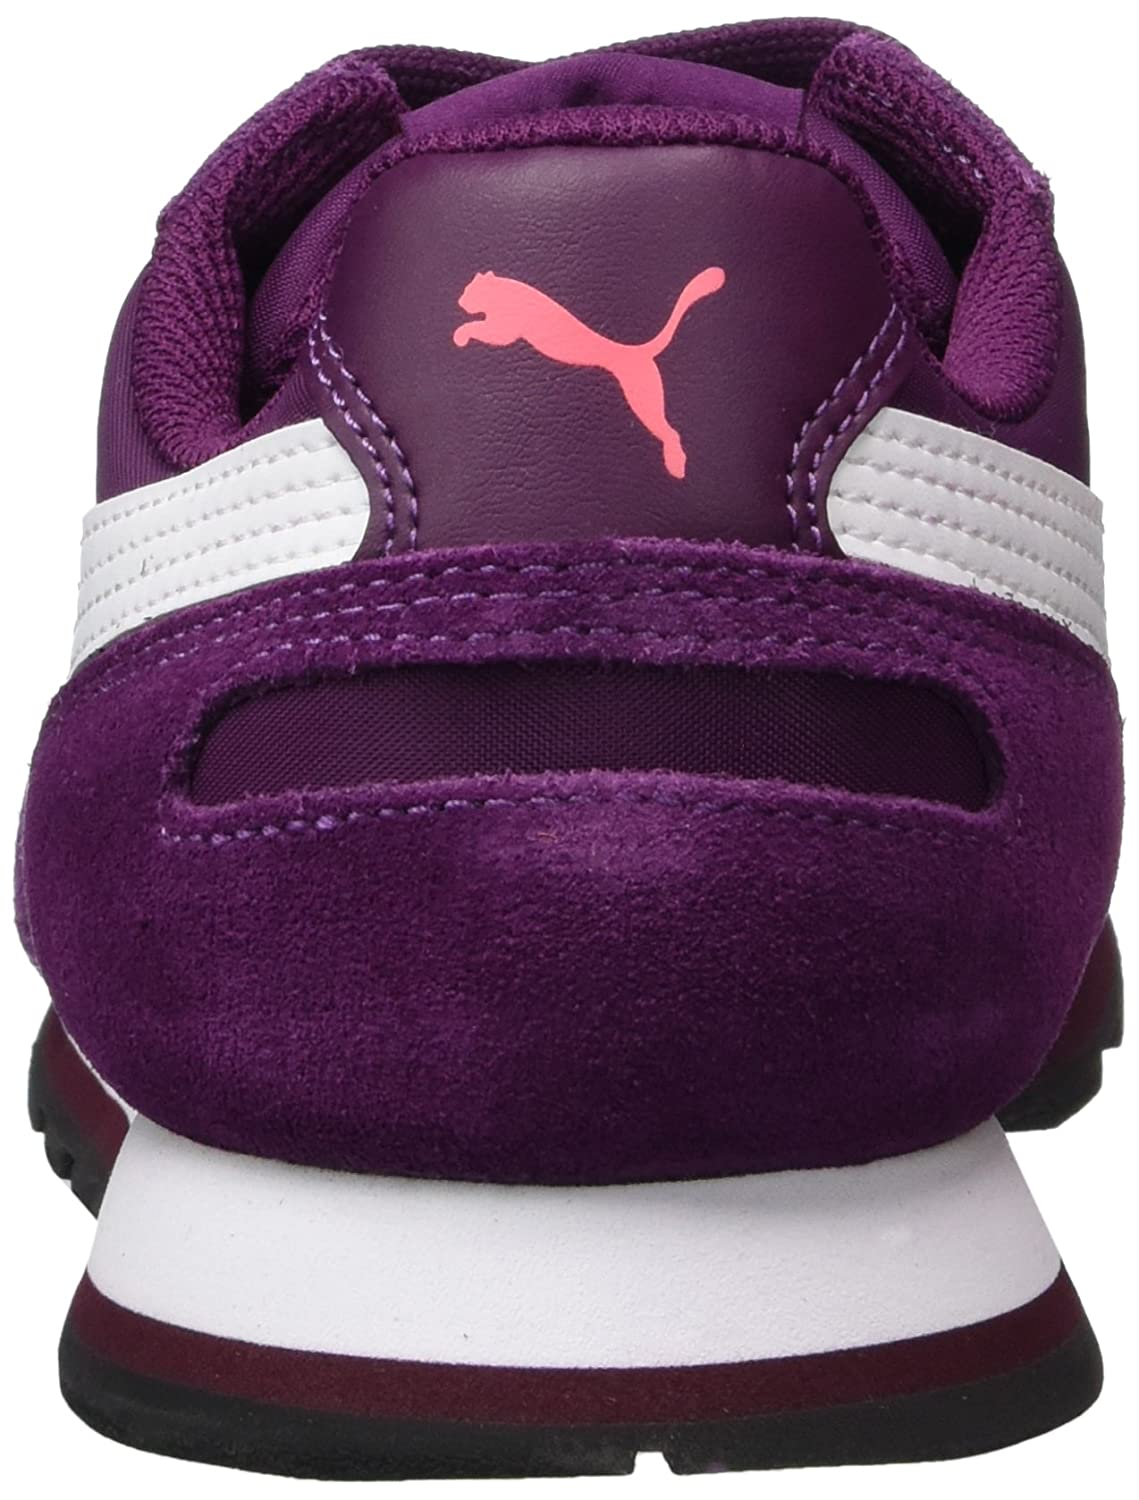 Man's/Woman's Puma Unisex Unisex Unisex Adults' St Runner Nl Low-Top Sneakers Big clearance sale Preferred material Shopping promotion WG8293 8c75f0